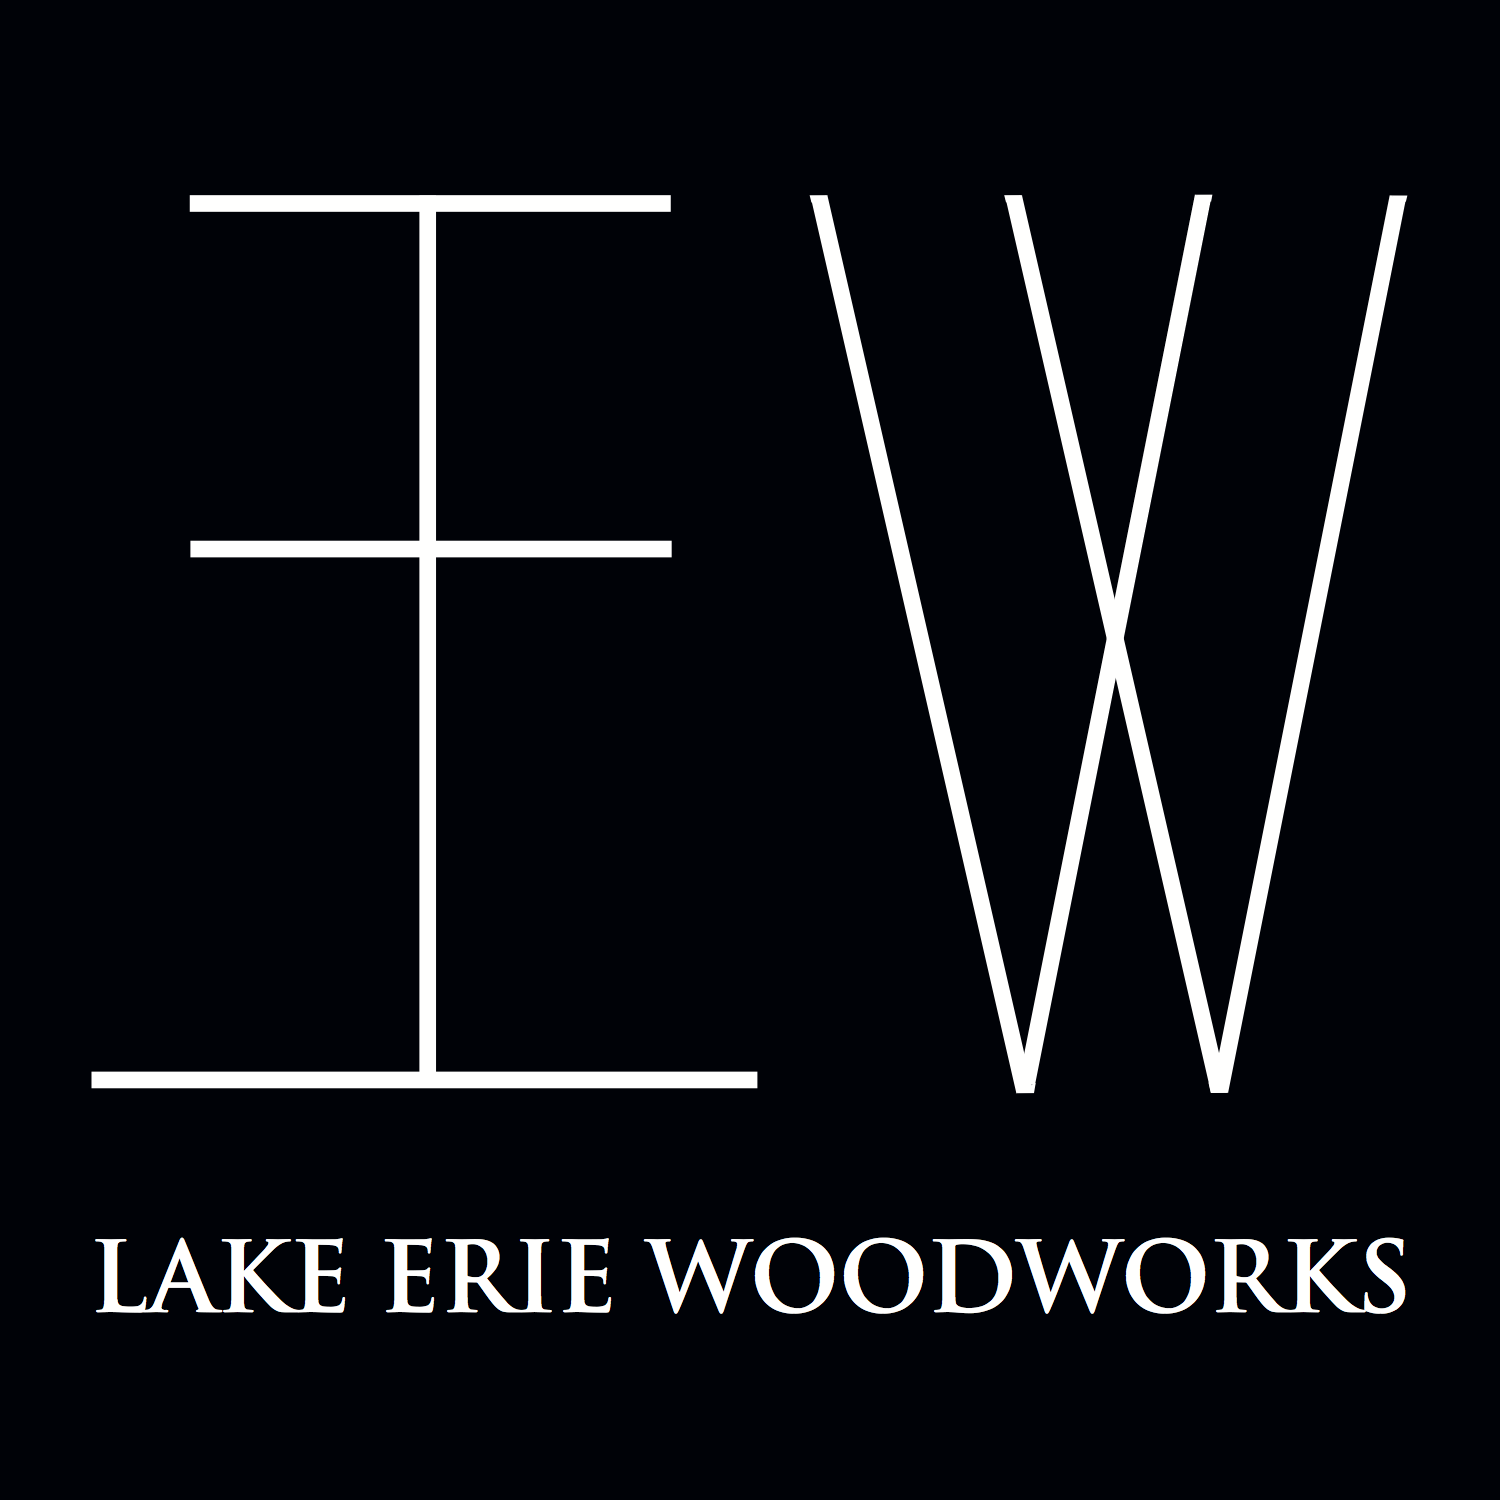 Lake Erie Woodworks